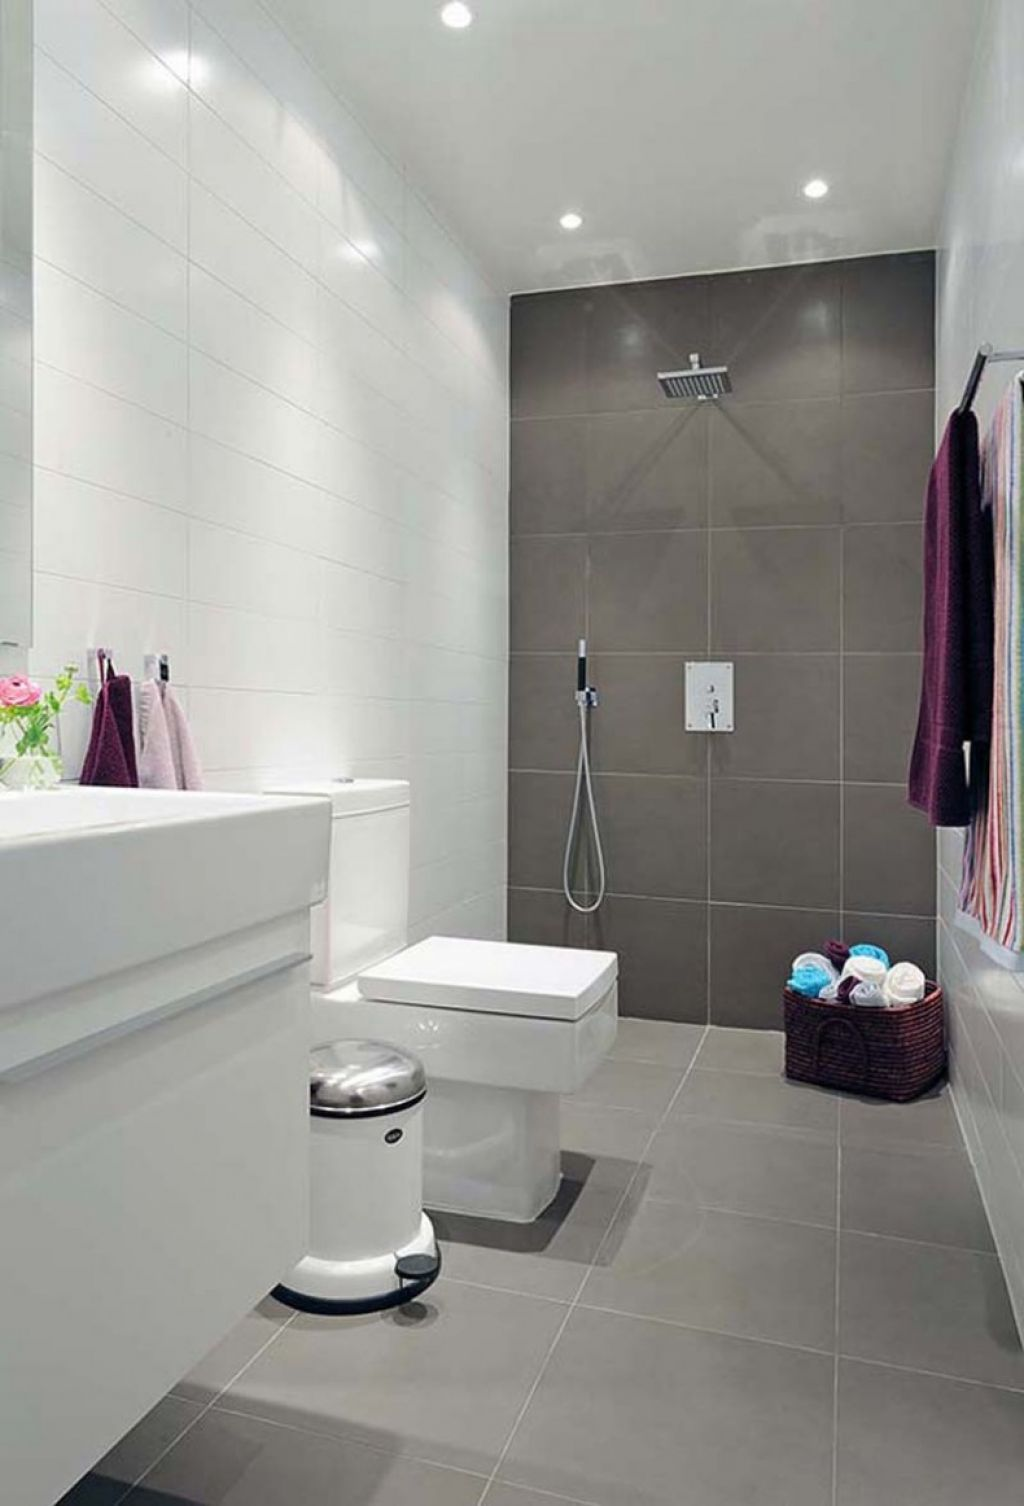 Bathroom tile to ceiling - Modern Bathroom With Same Tile On Floor And Wall Main Wall Tiled To Ceiling